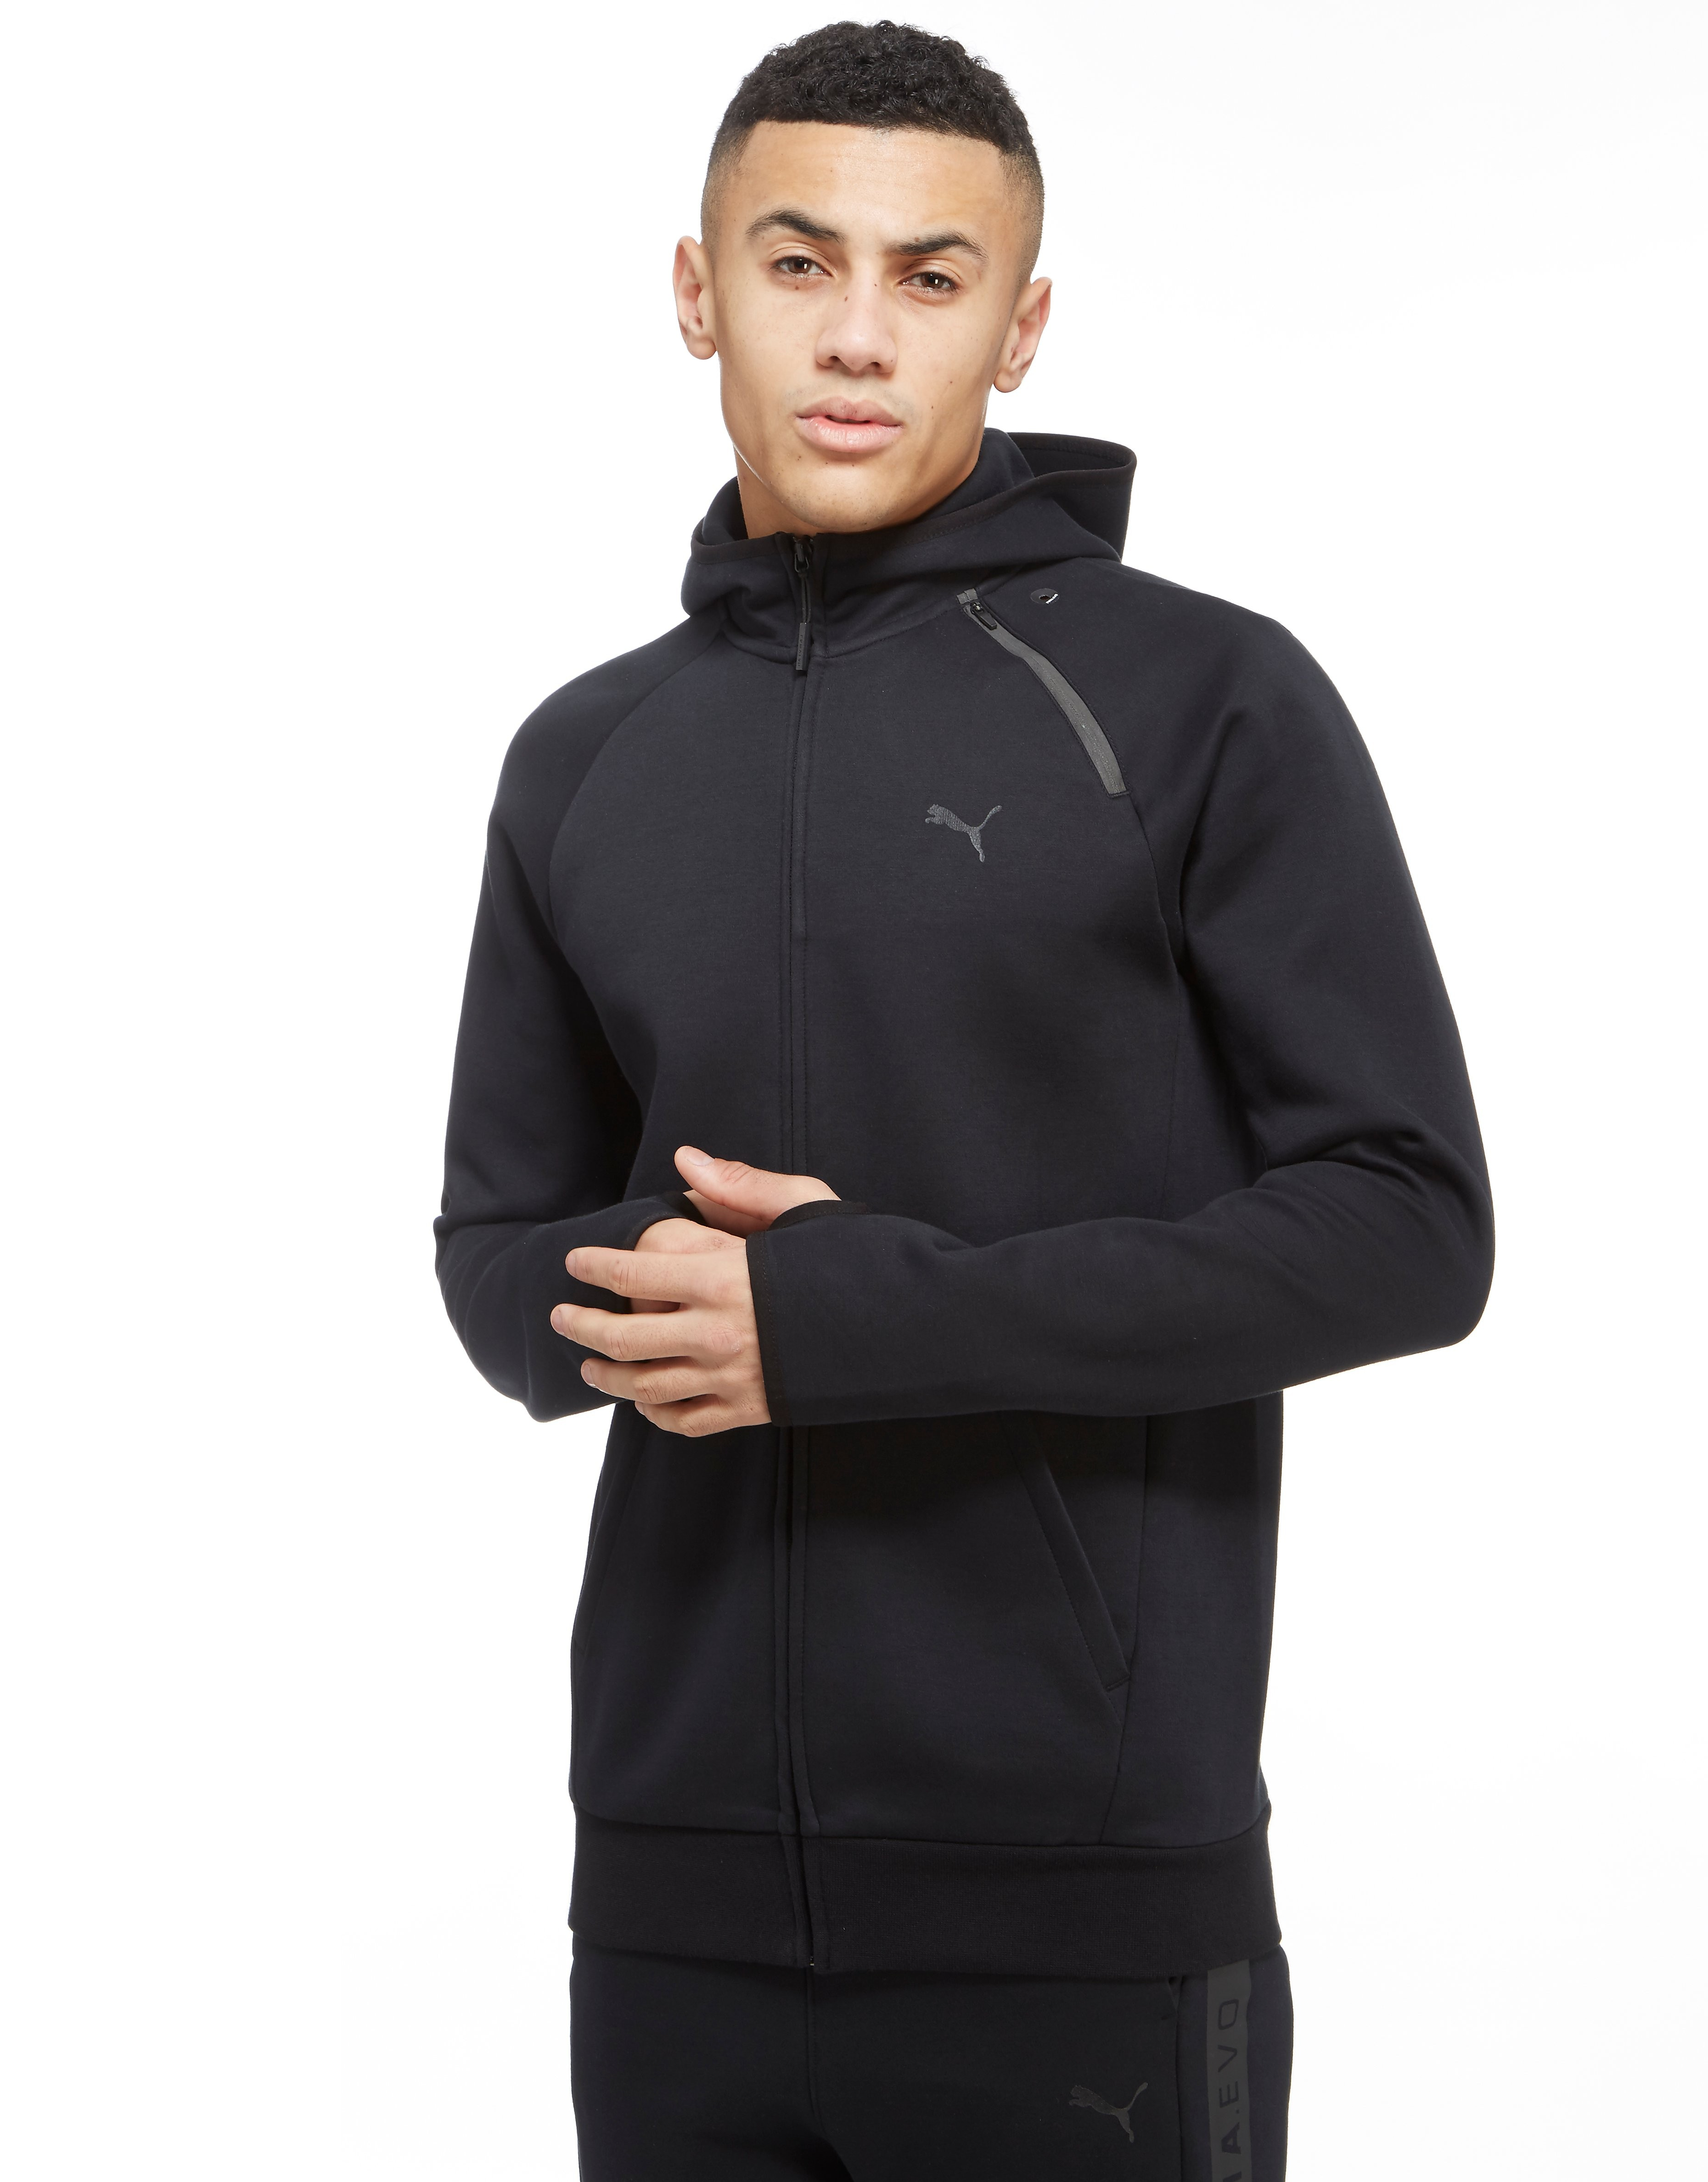 PUMA Evo Core Full Zip Hoody